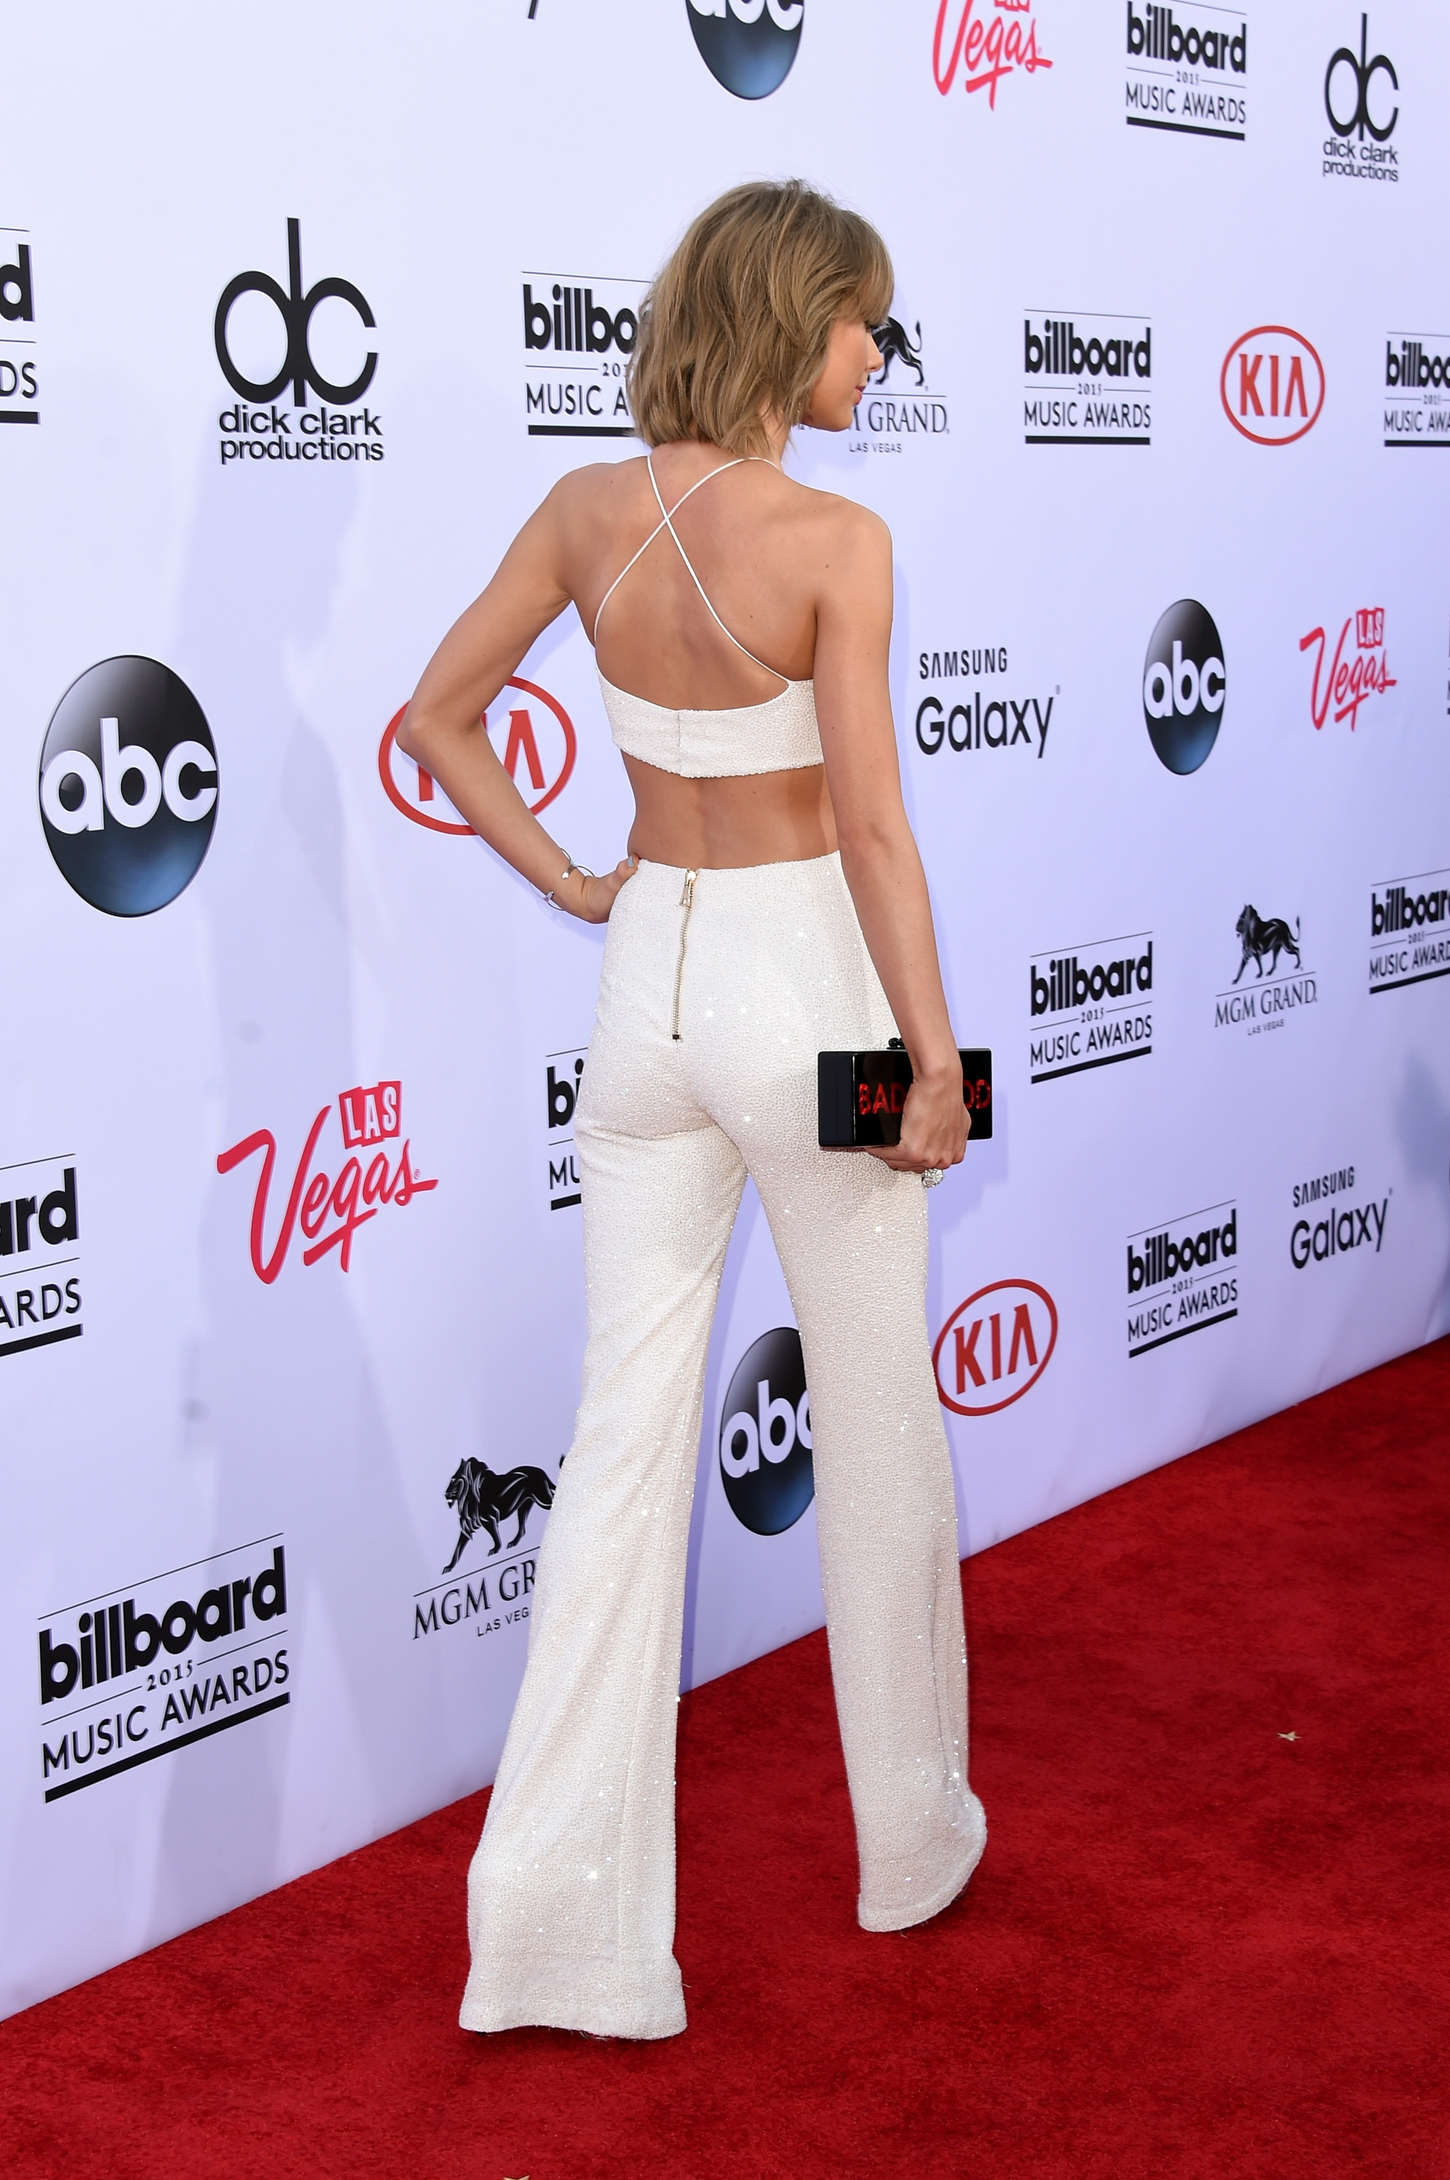 Taylor Swfit 2015 : Taylor Swift : Billboard Music Awards 2015 -11